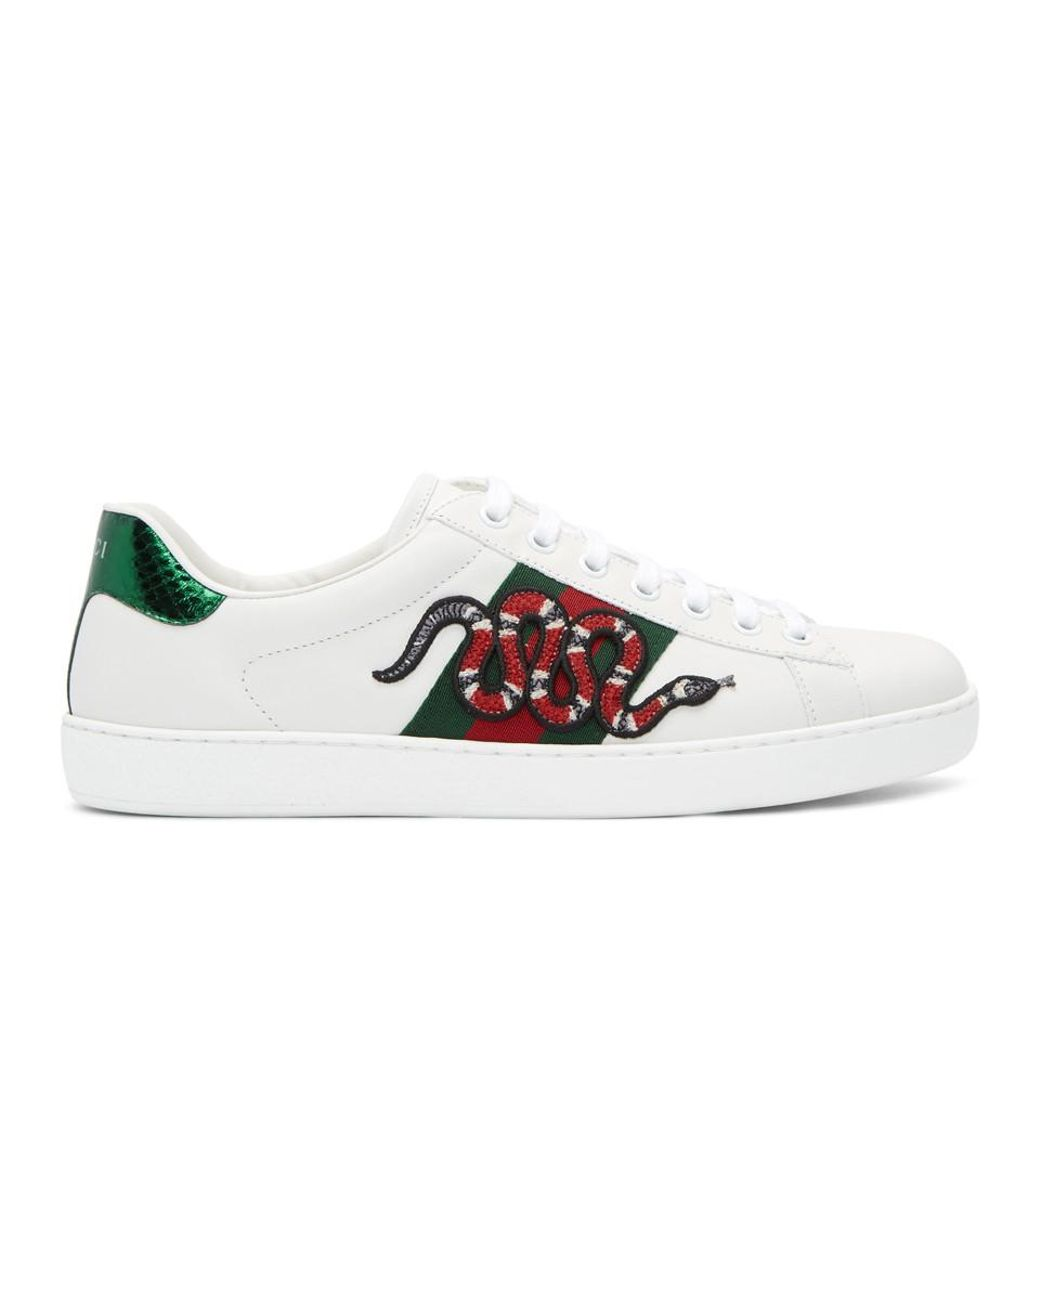 b82370604a370 Lyst - Gucci White Snake Ace Sneakers in White for Men